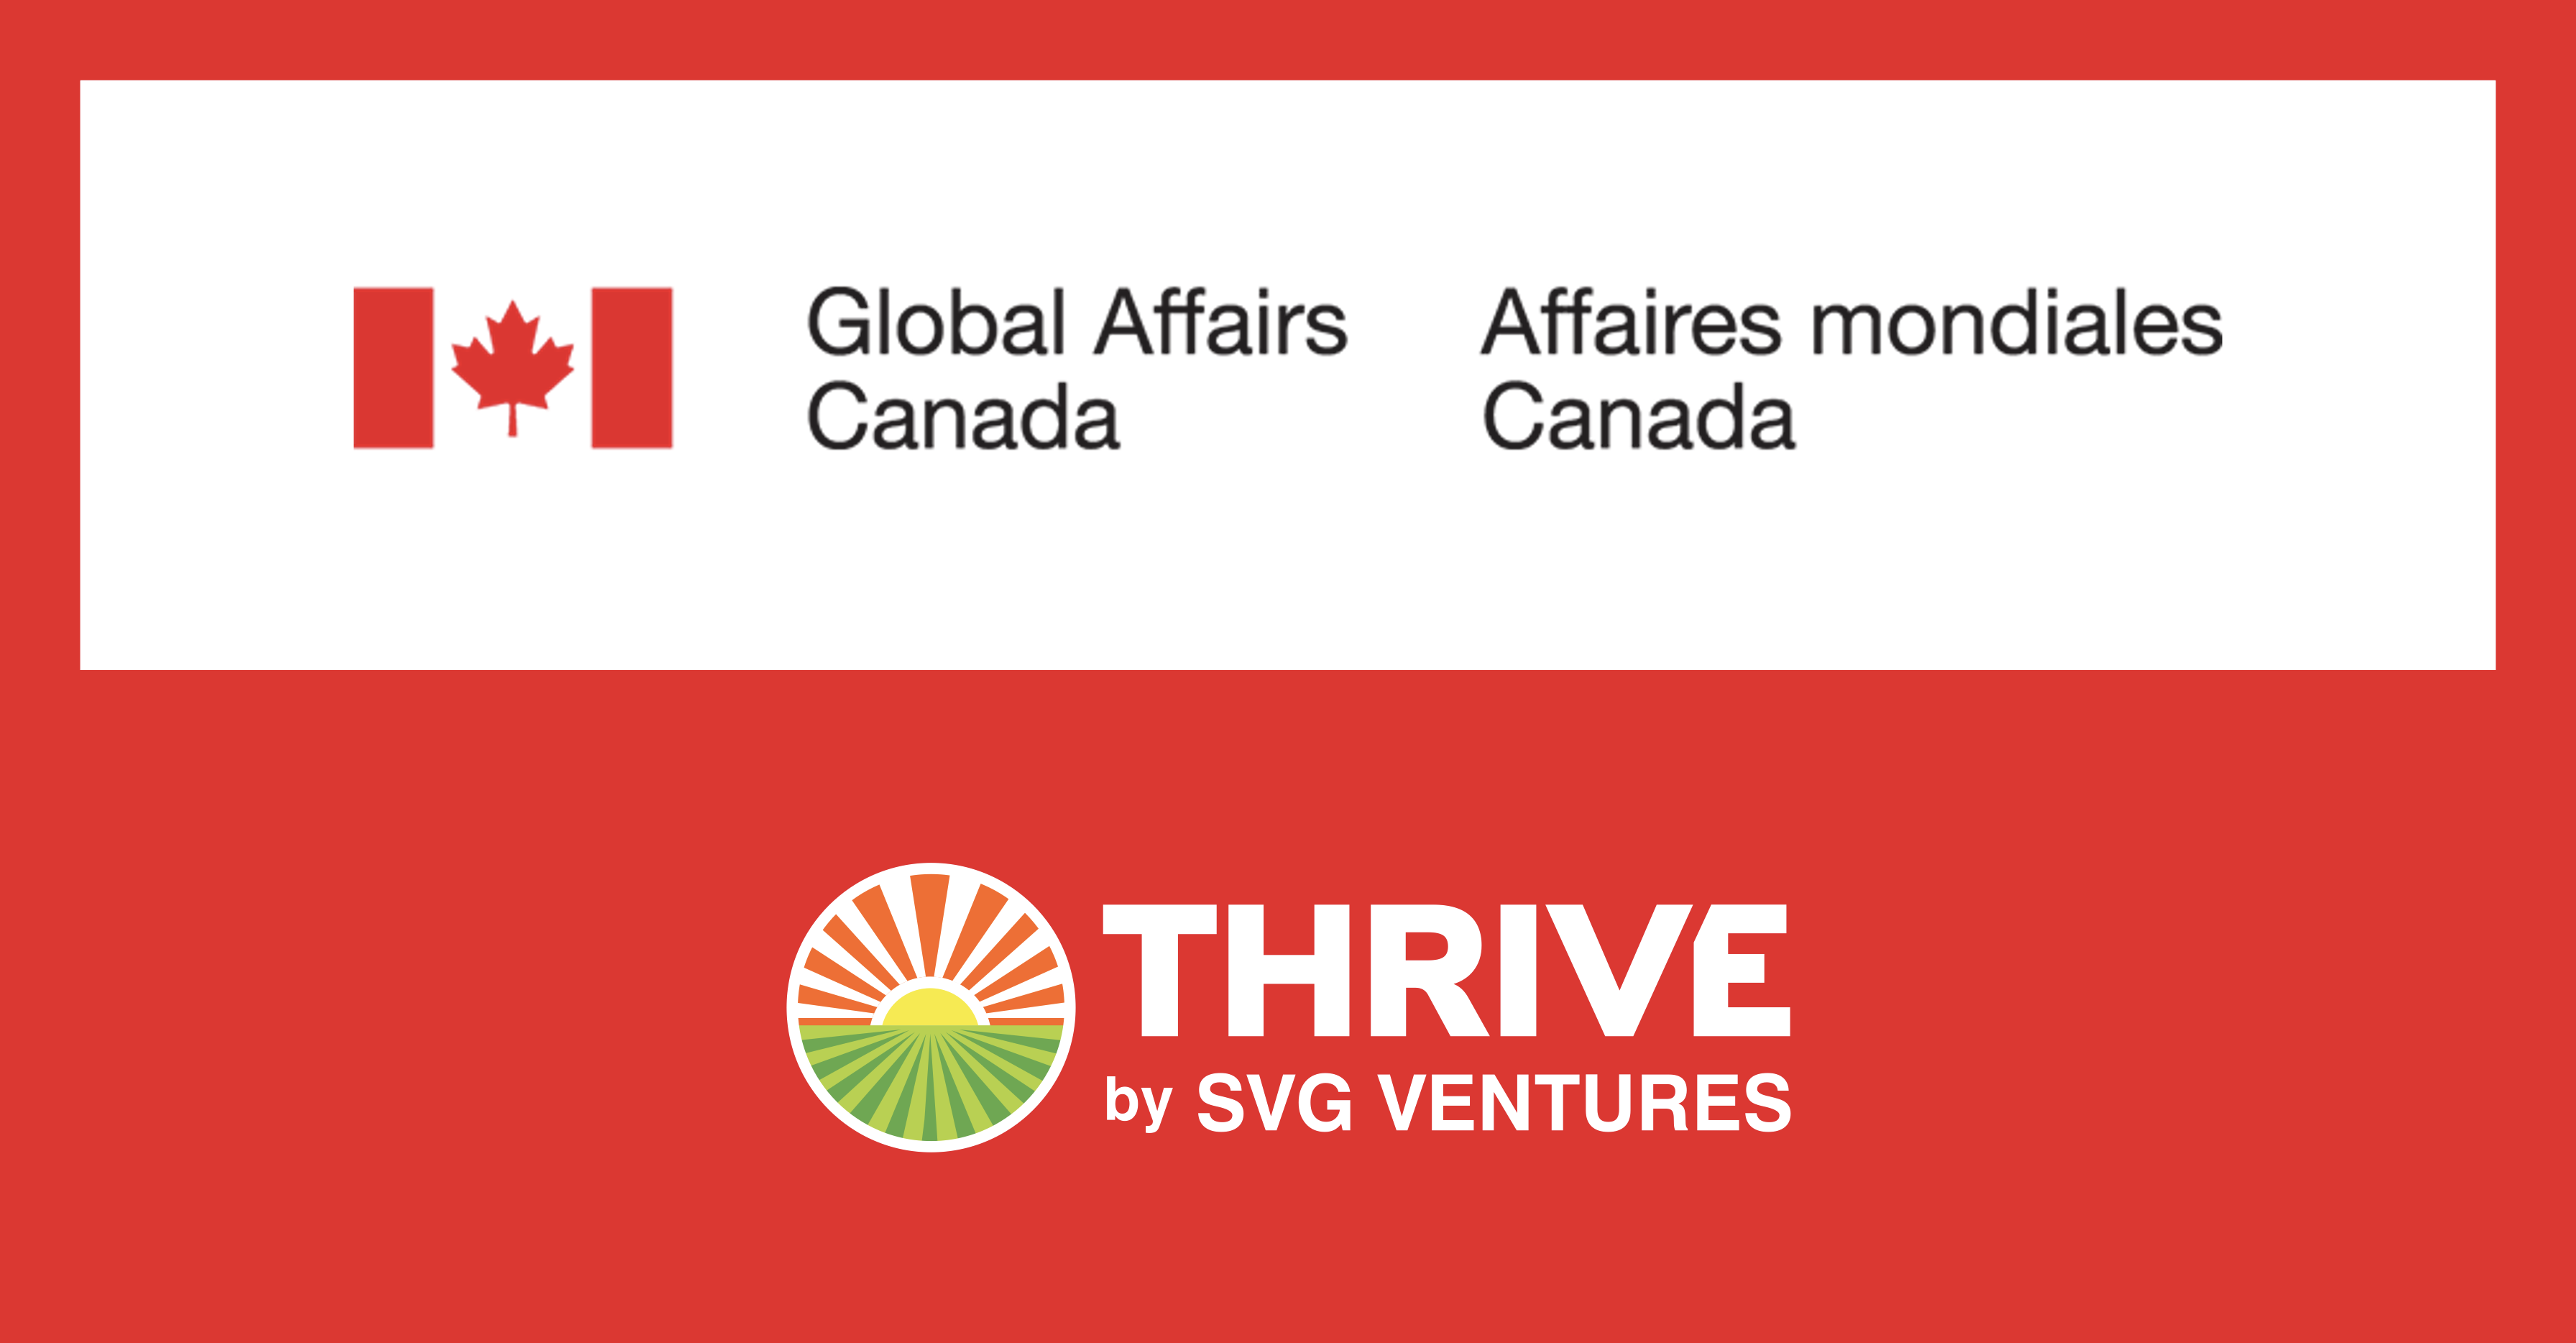 SVG Ventures | THRIVE and Canadian Government partner to accelerate AgTech innovation and investment